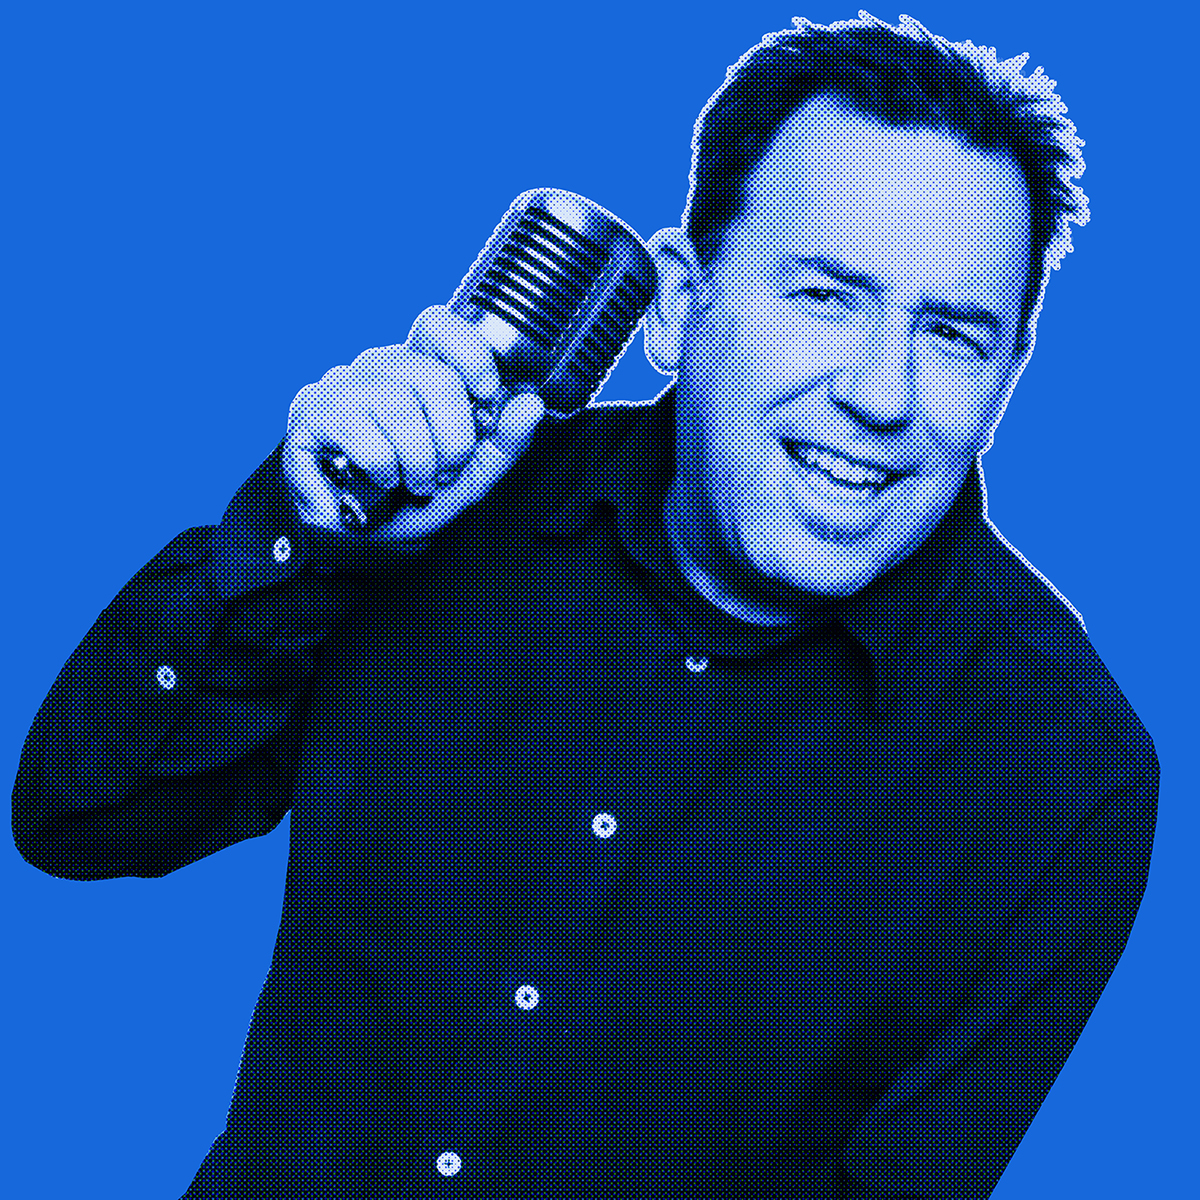 Blue-filtered picture of a man smiling and holding a microphone to his ear